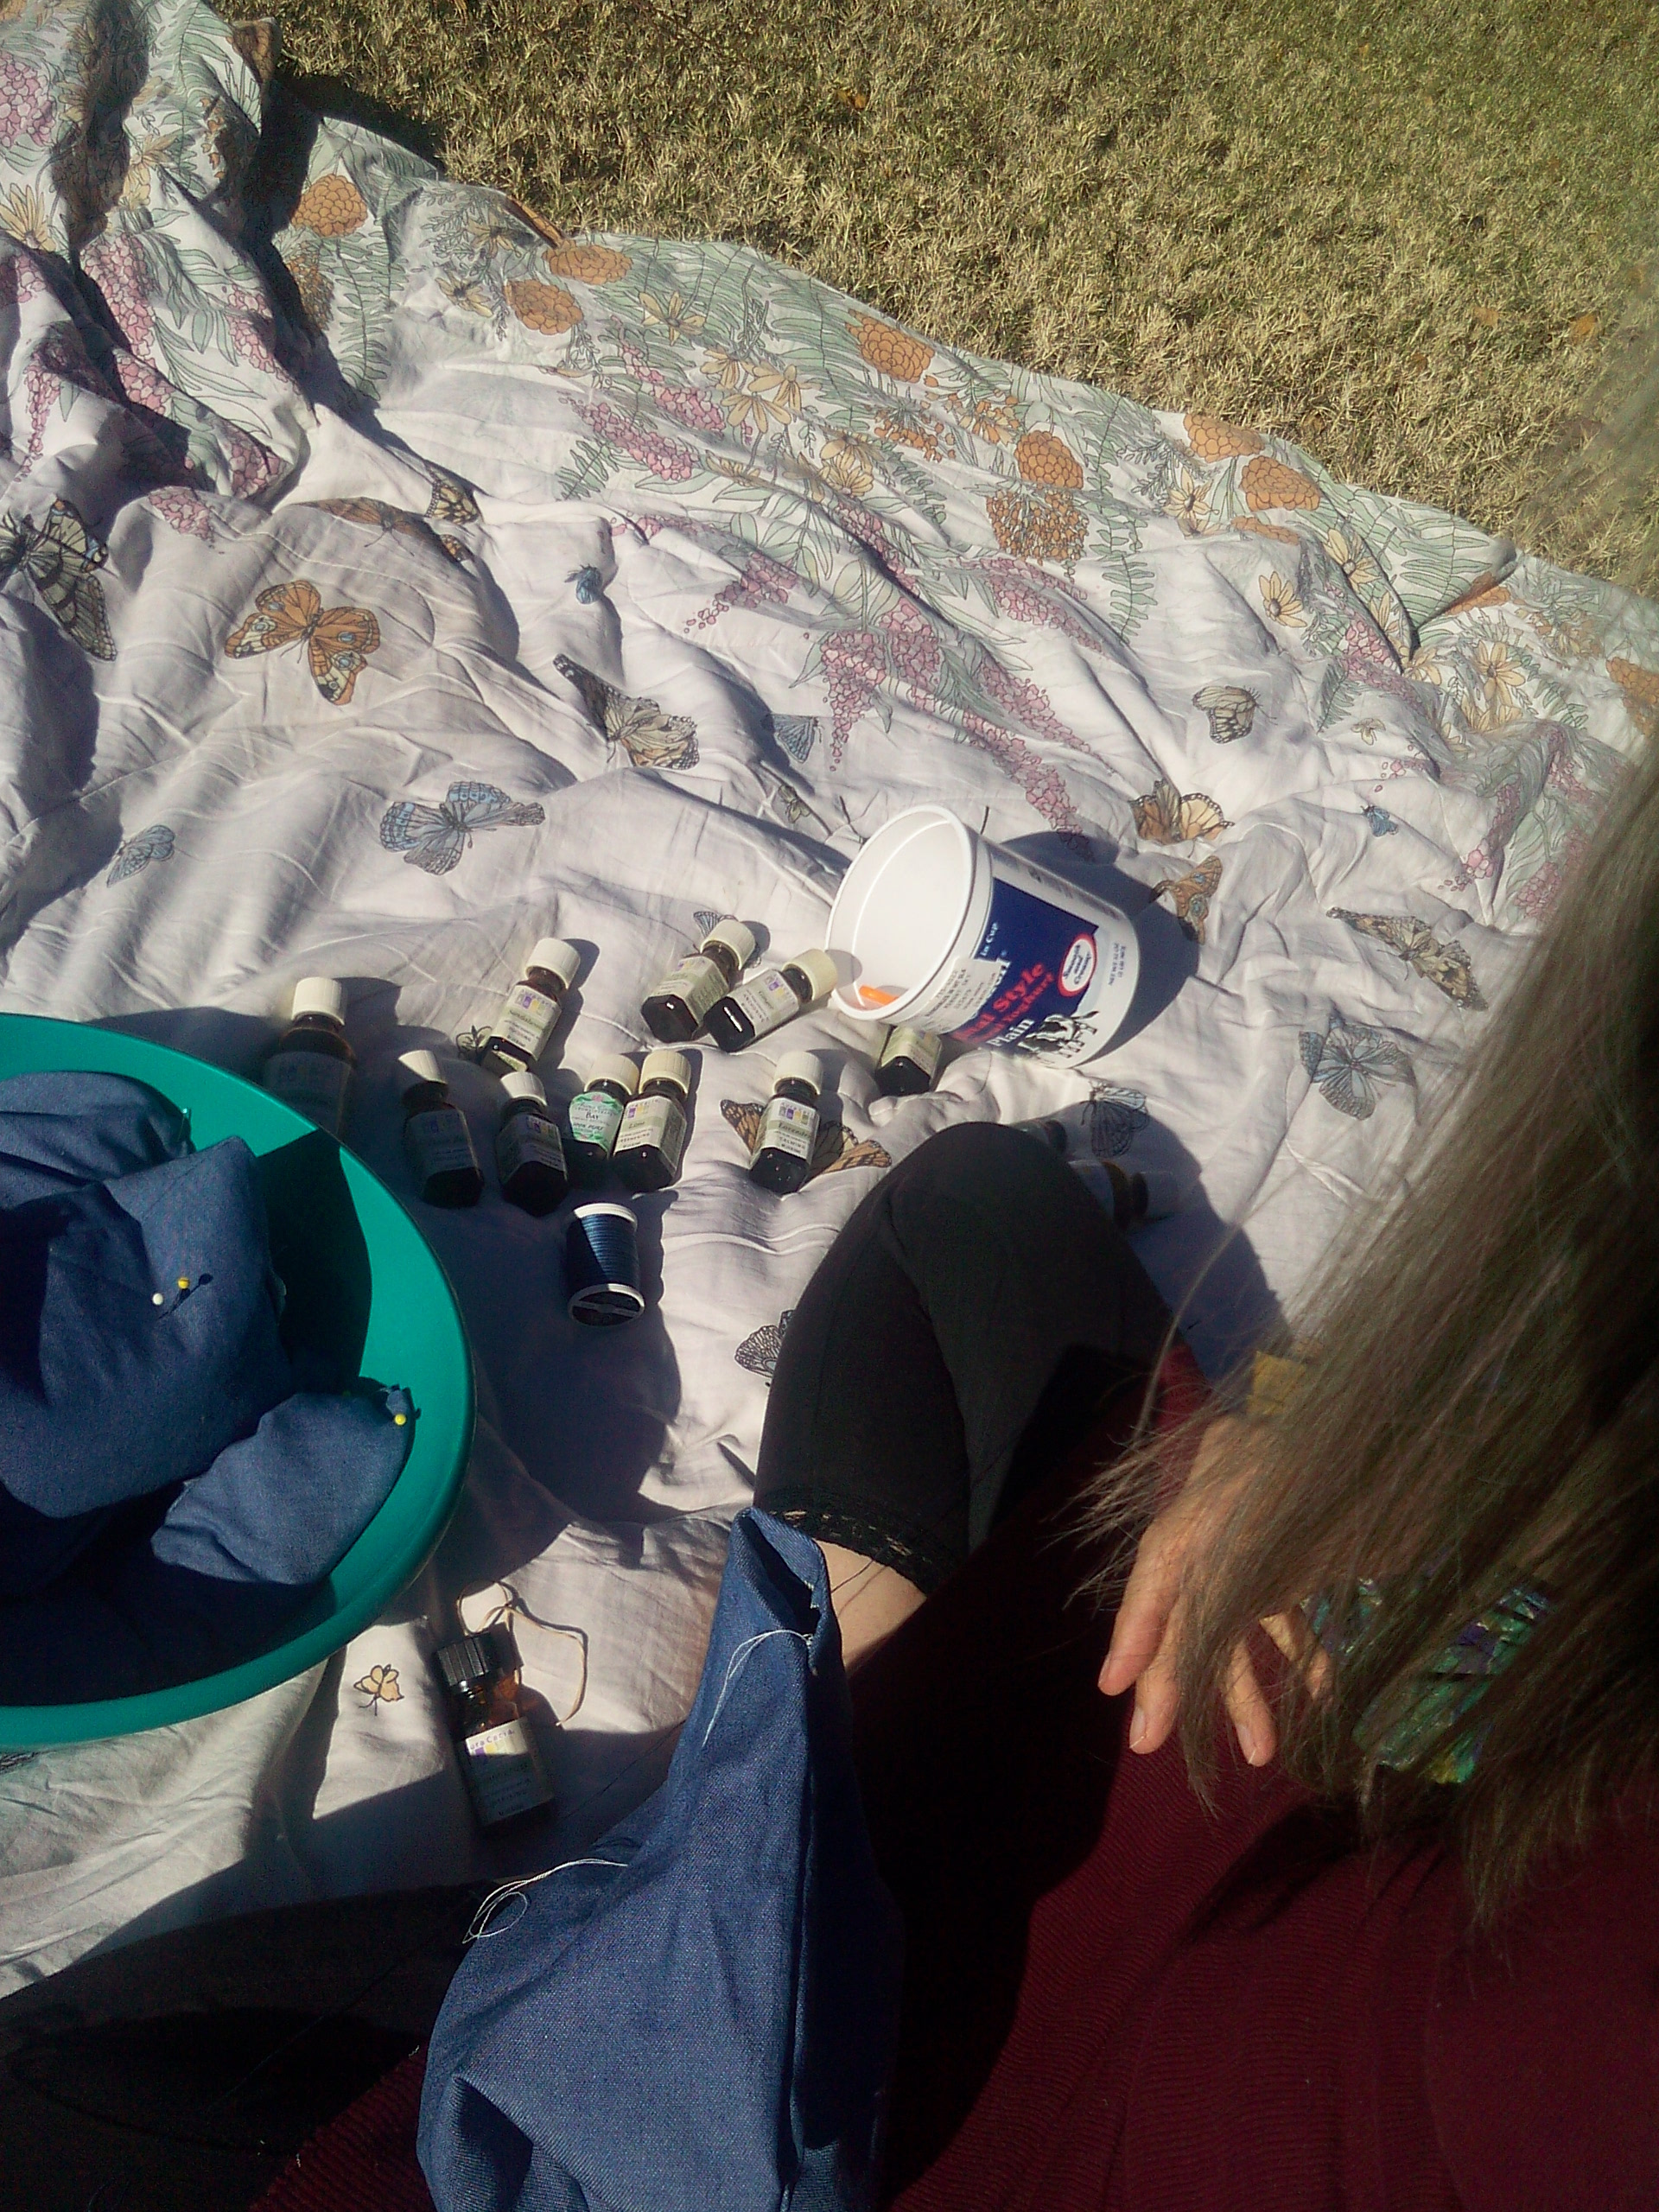 sitting-in-sun-sewing-aromatherapy-packs